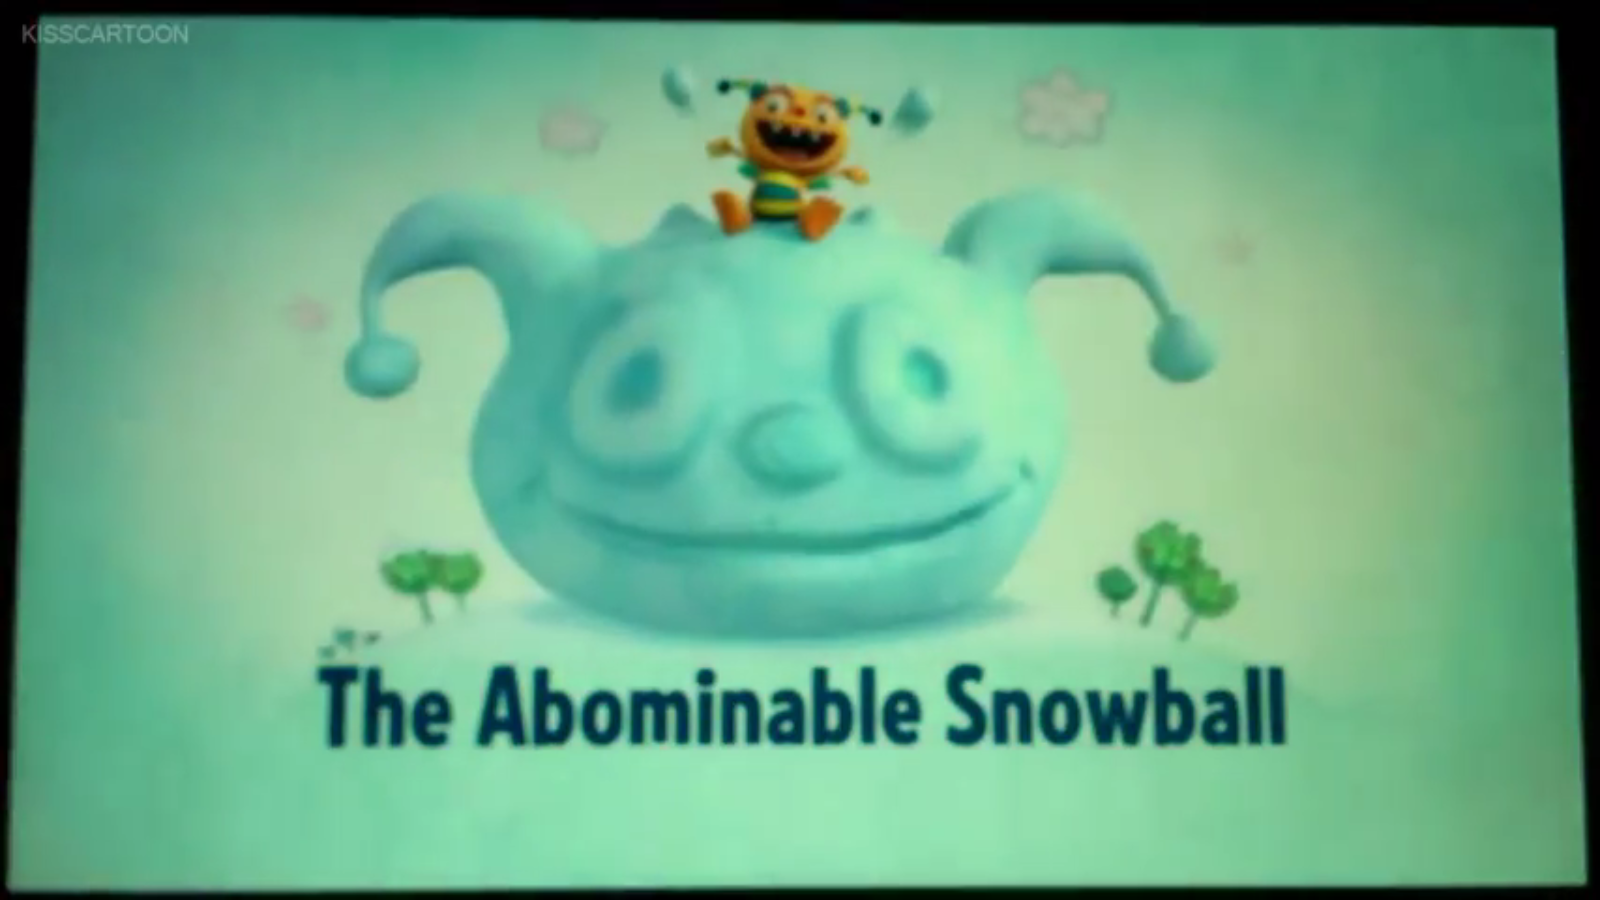 The Abominable Snowball